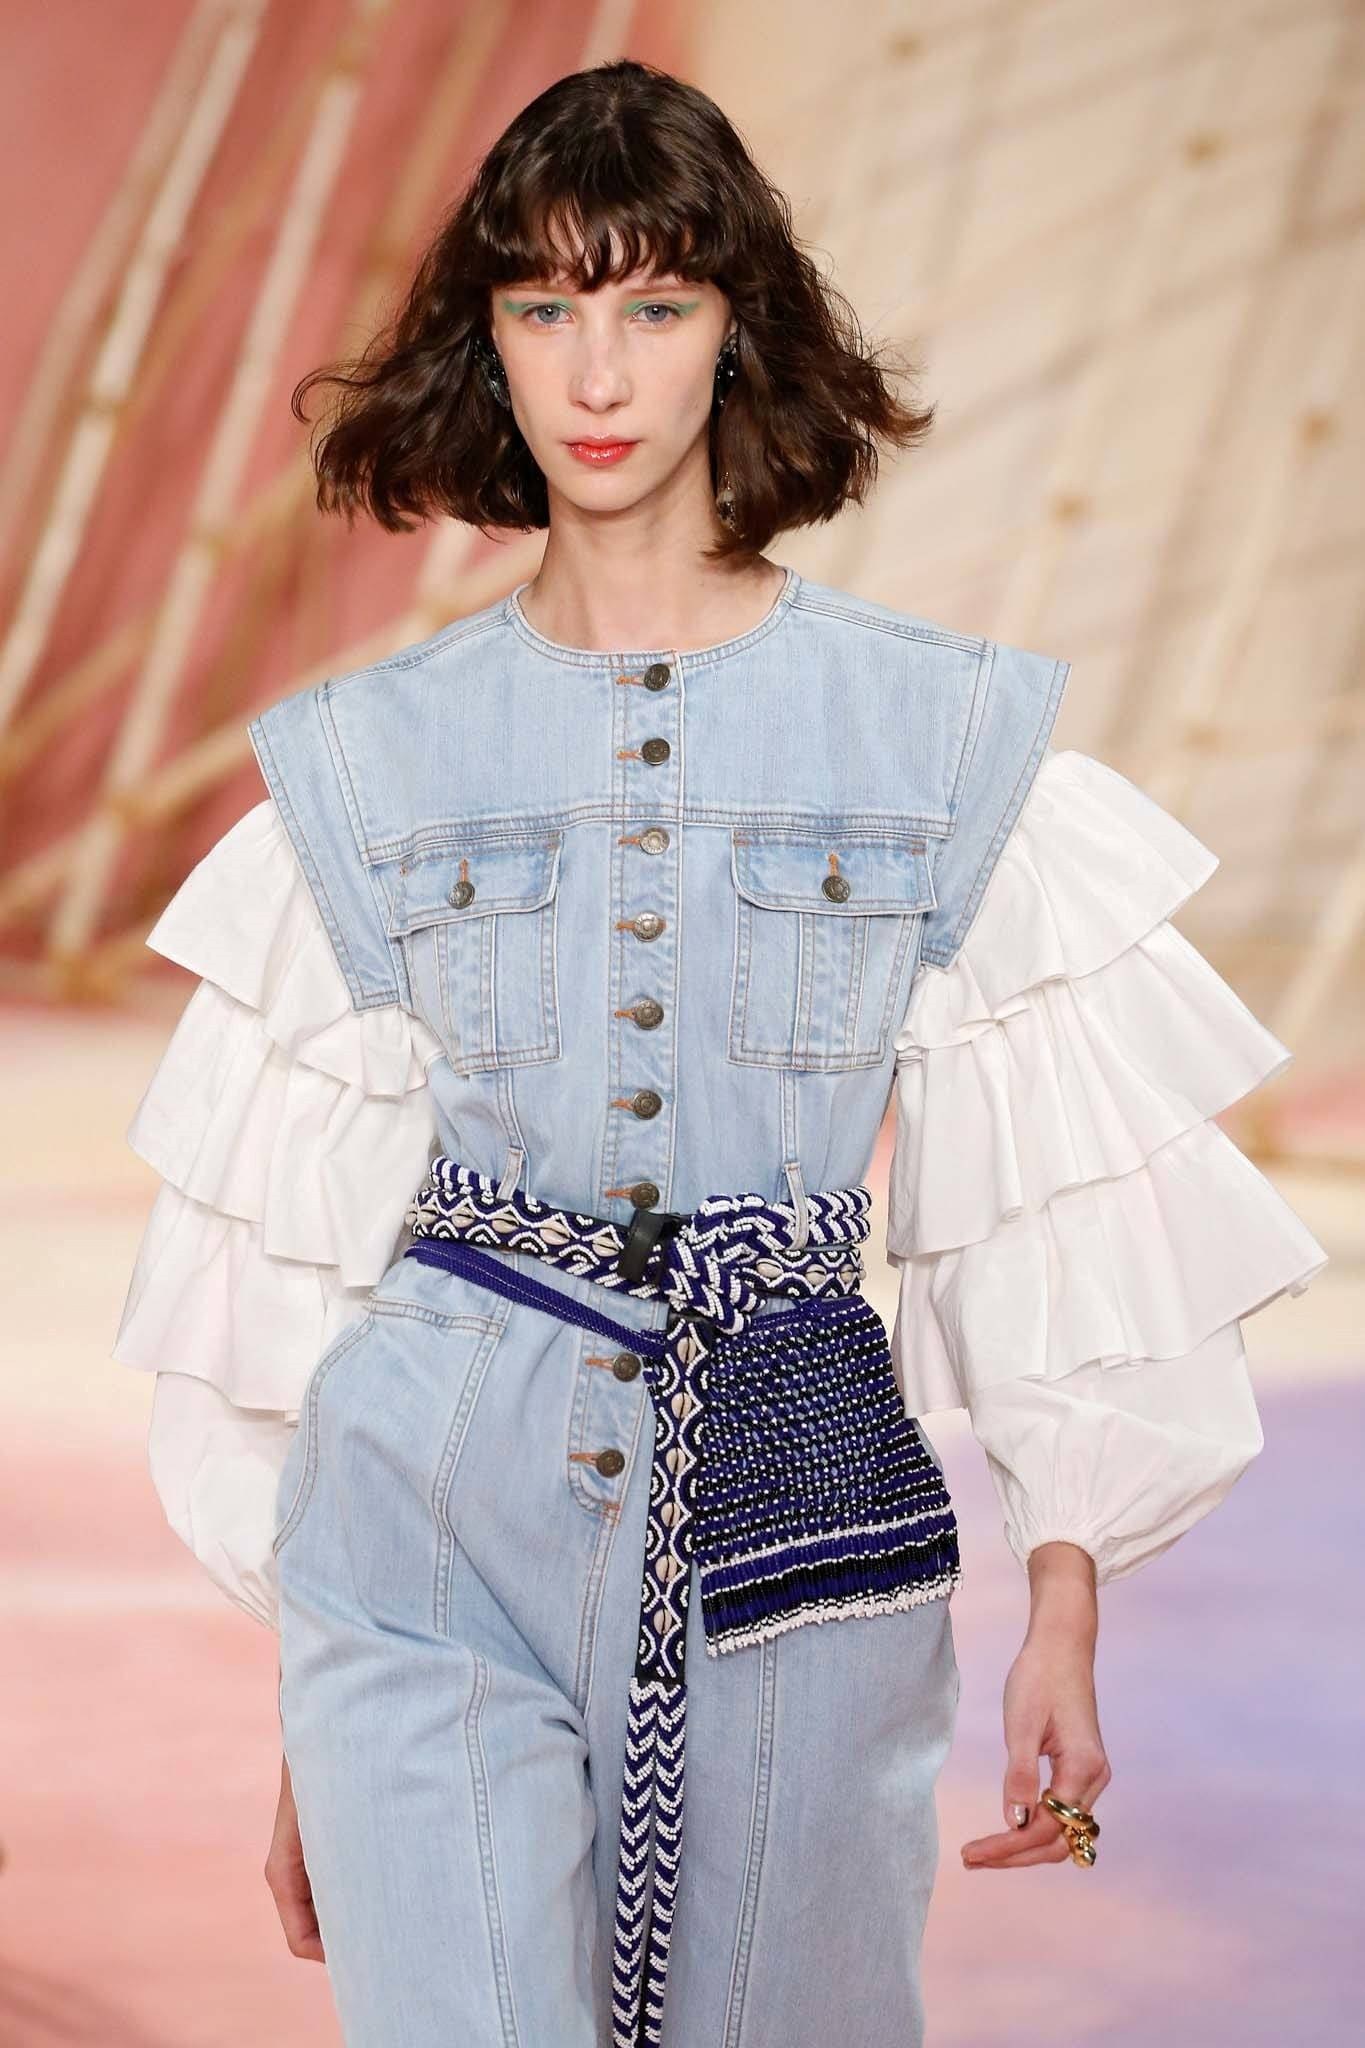 Woman with wavy bob with bangs wearing a light denim dress walking on the runway